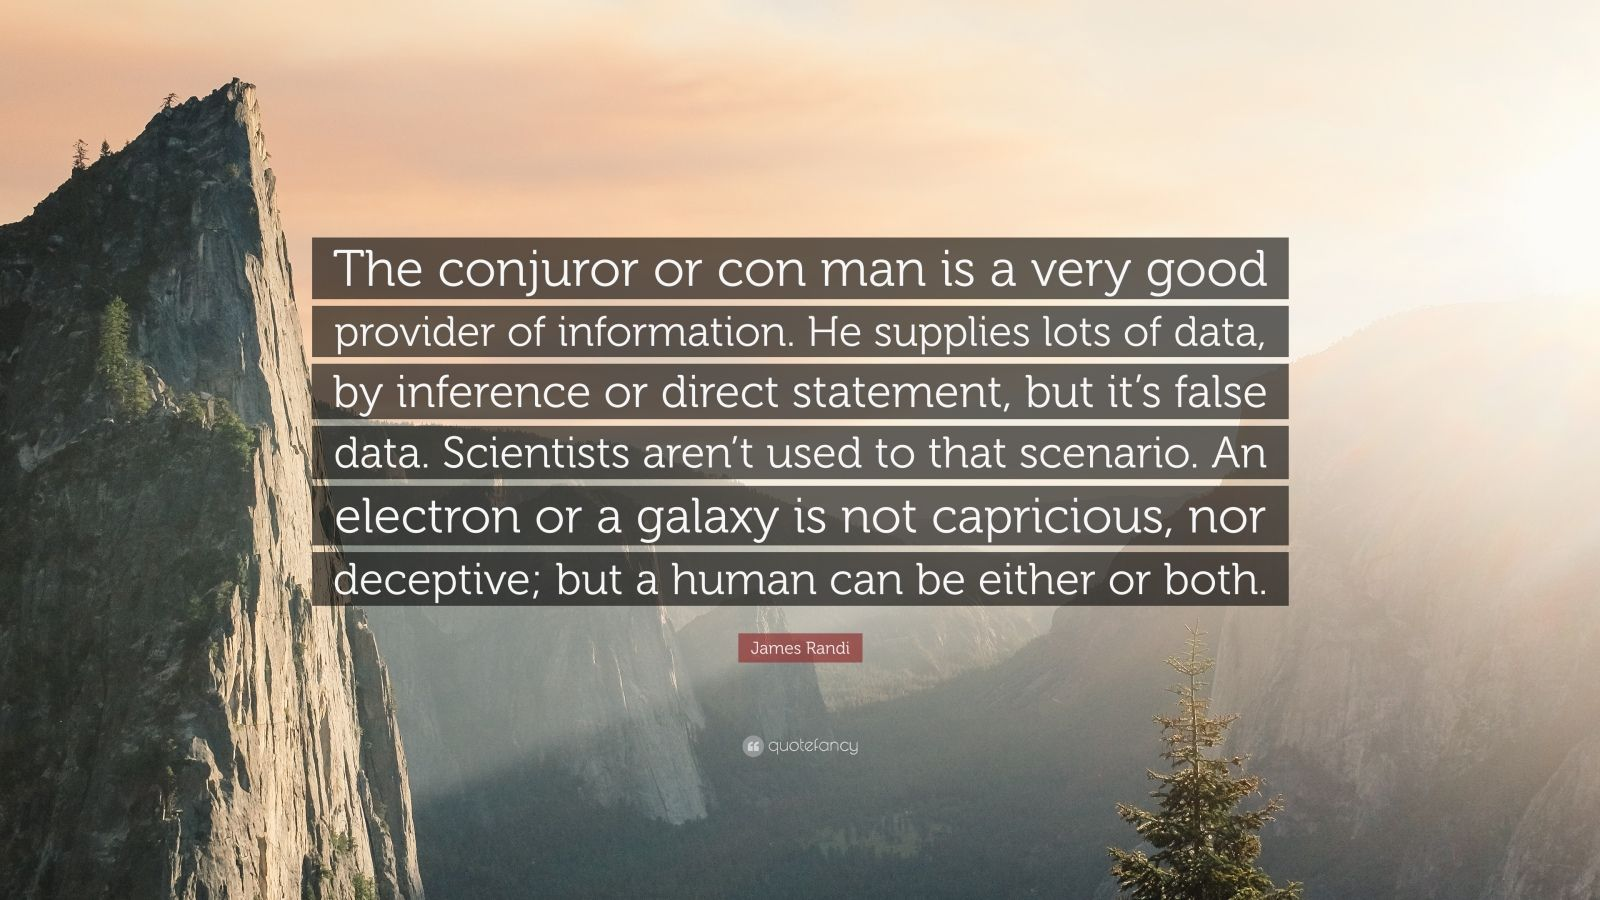 """James Randi Quote: """"The conjuror or con man is a very good provider of information. He supplies lots of data, by inference or direct statement, but it's false data. Scientists aren't used to that scenario. An electron or a galaxy is not capricious, nor deceptive; but a human can be either or both."""""""